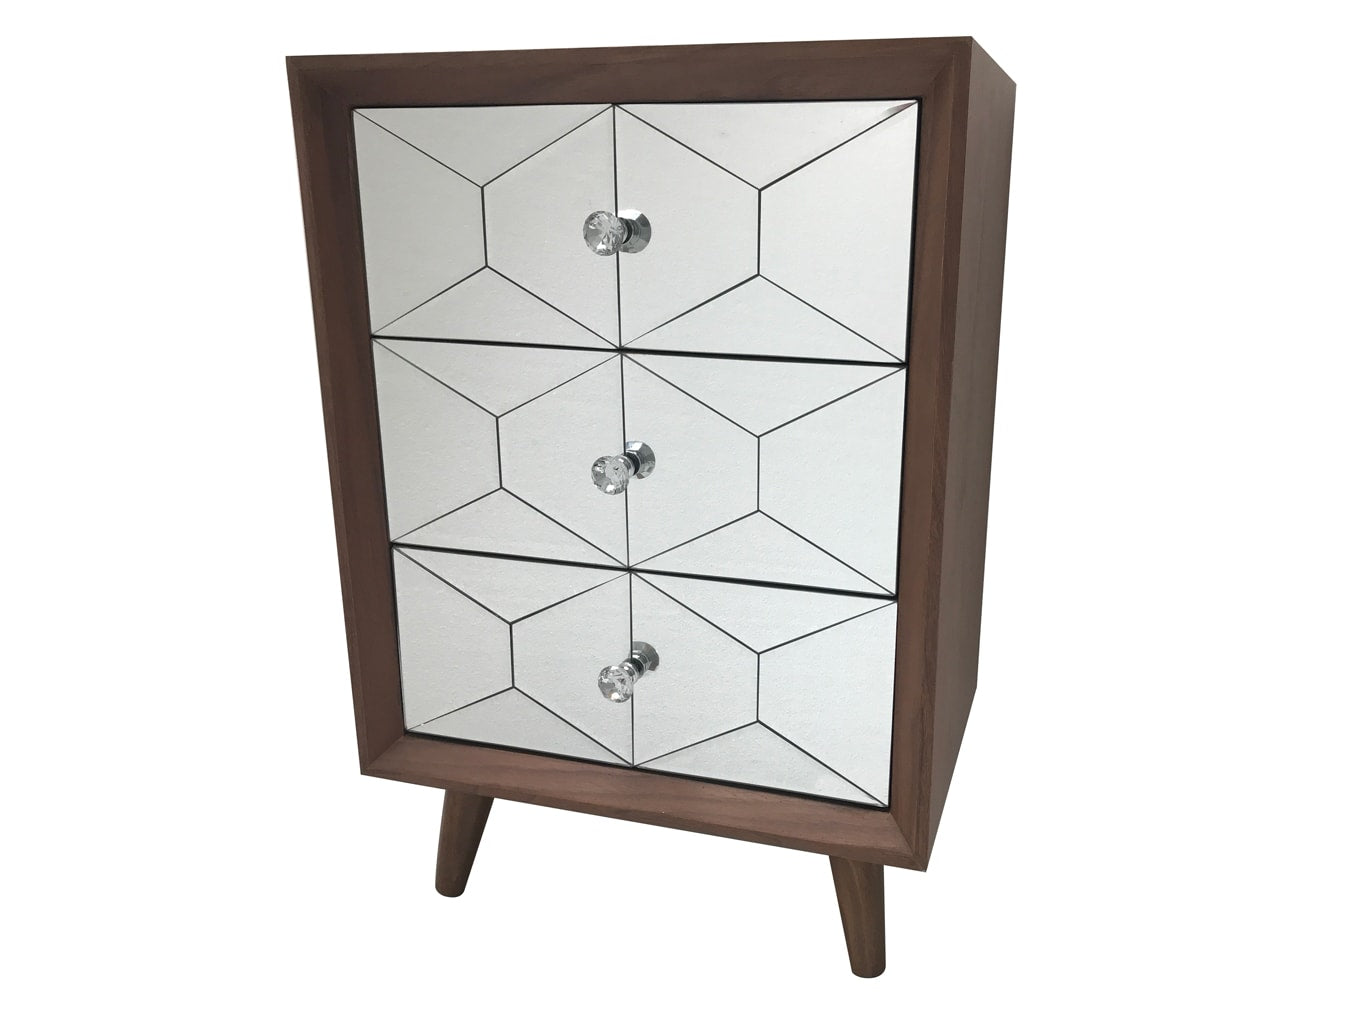 Wooden Chest of Drawers with 3 Mirrored Drawers